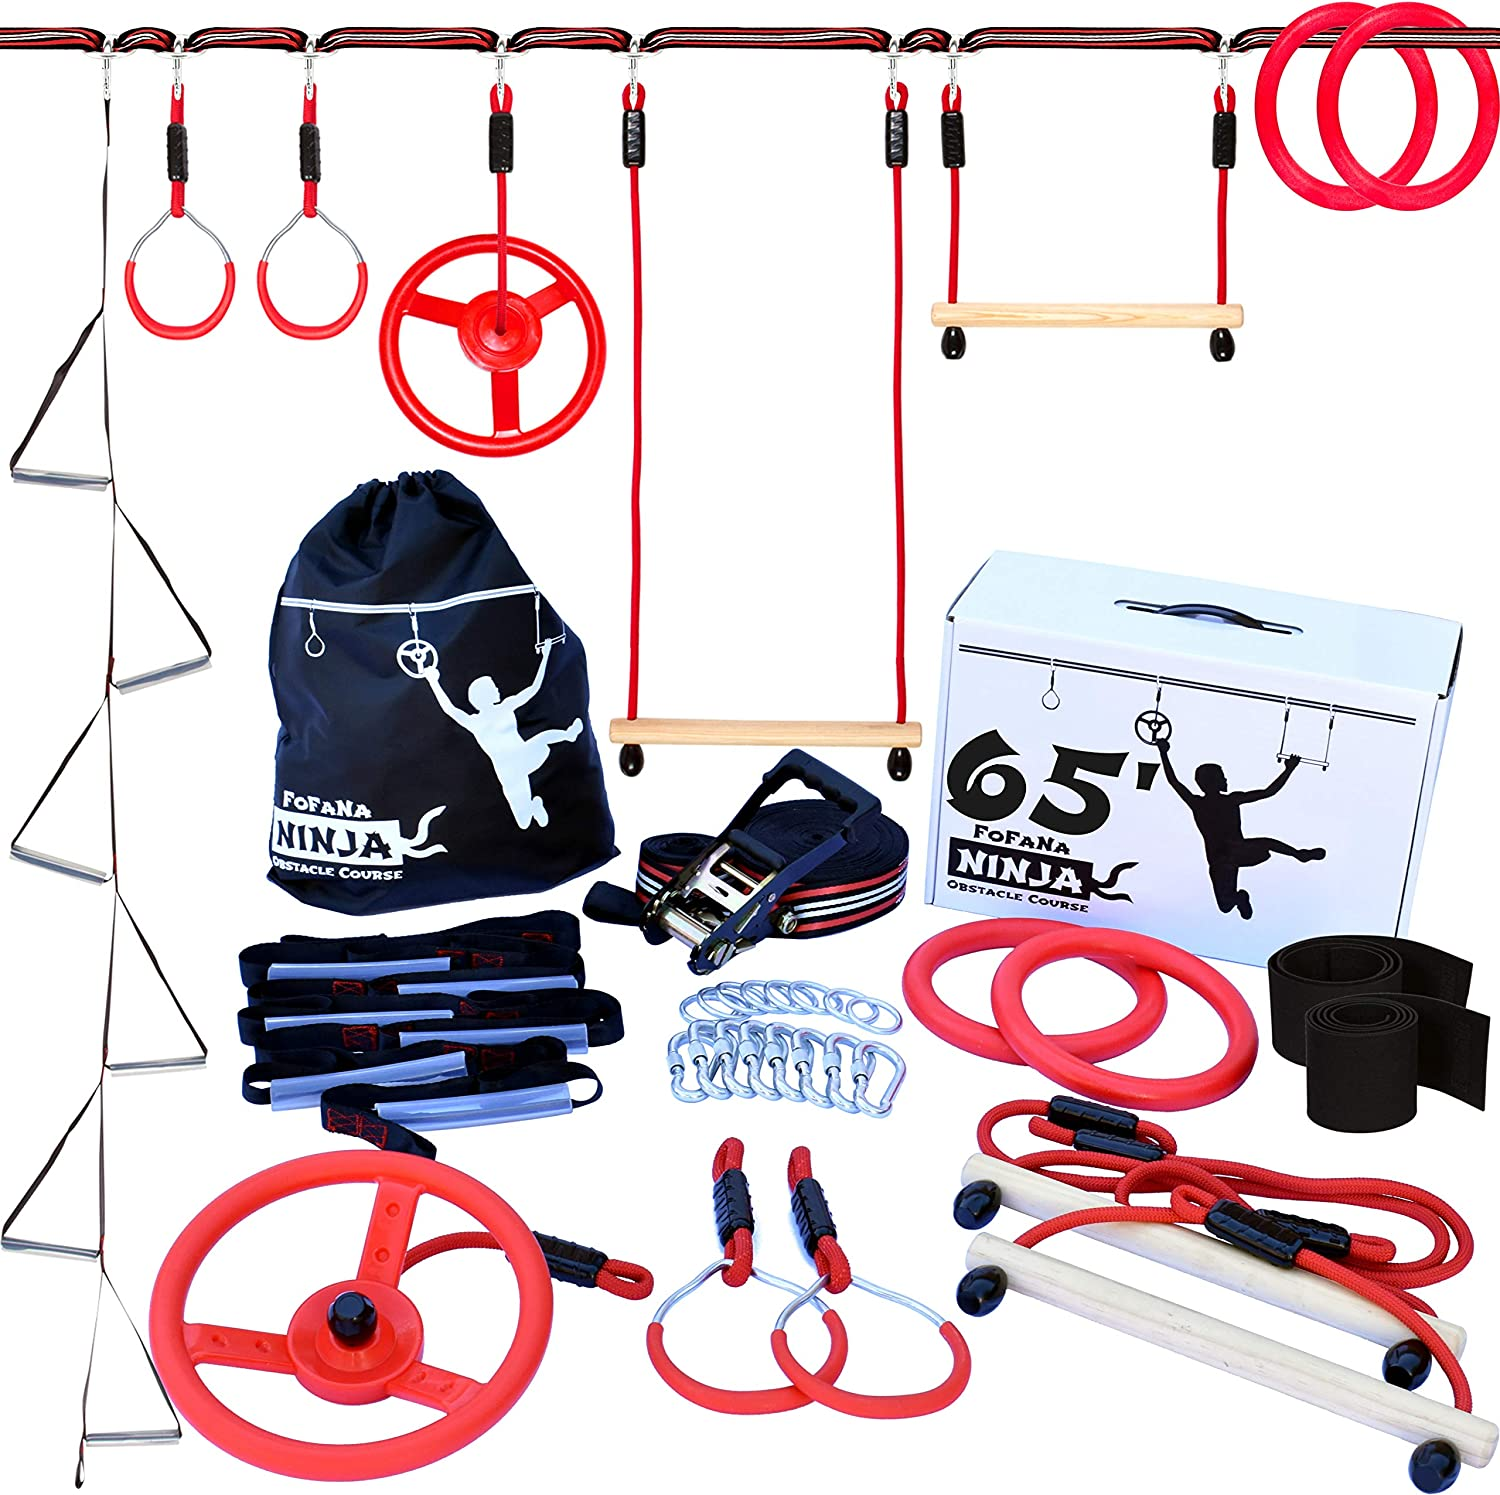 Fofana Ninja Warrior Obstacle Course for Kids - 65 Ninja Slackline Obstacle Course for Kids with Adjustable Position | Bonus Freestyle Rings and ...